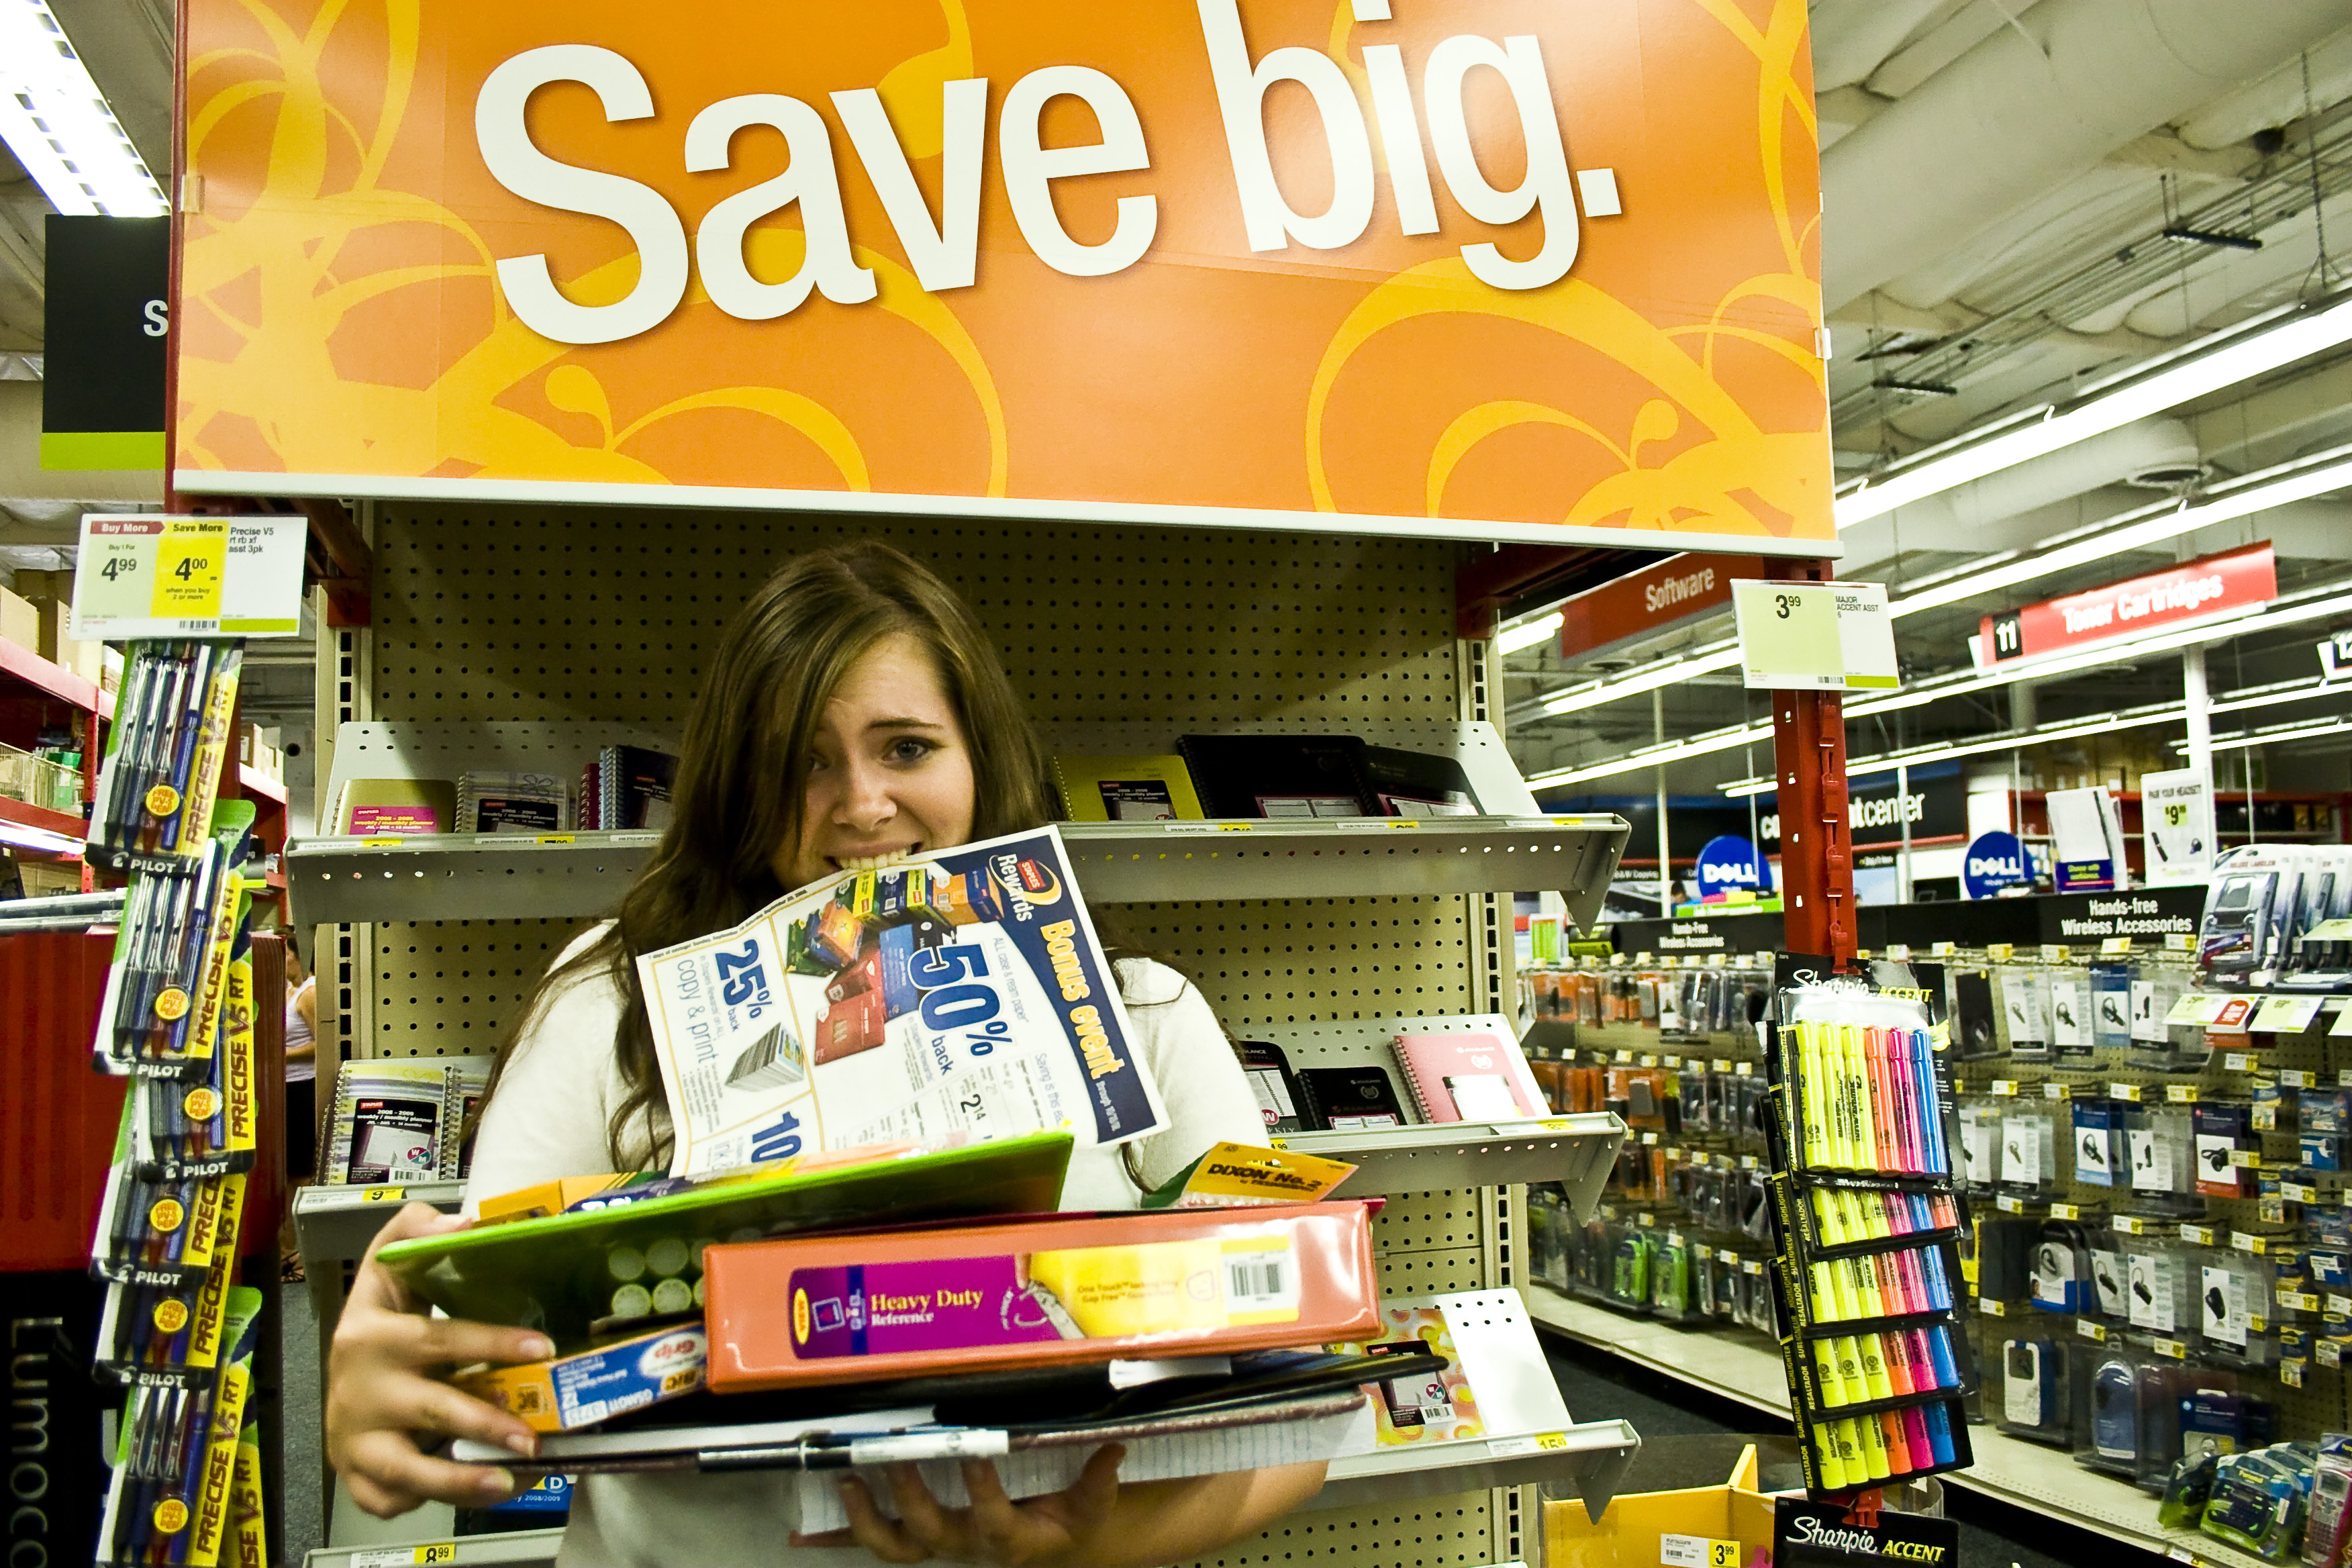 Here are some easy tips to help begin your school year by overloading yourself with great deals on school supplies at Staples.  Photo by Christina Schantz